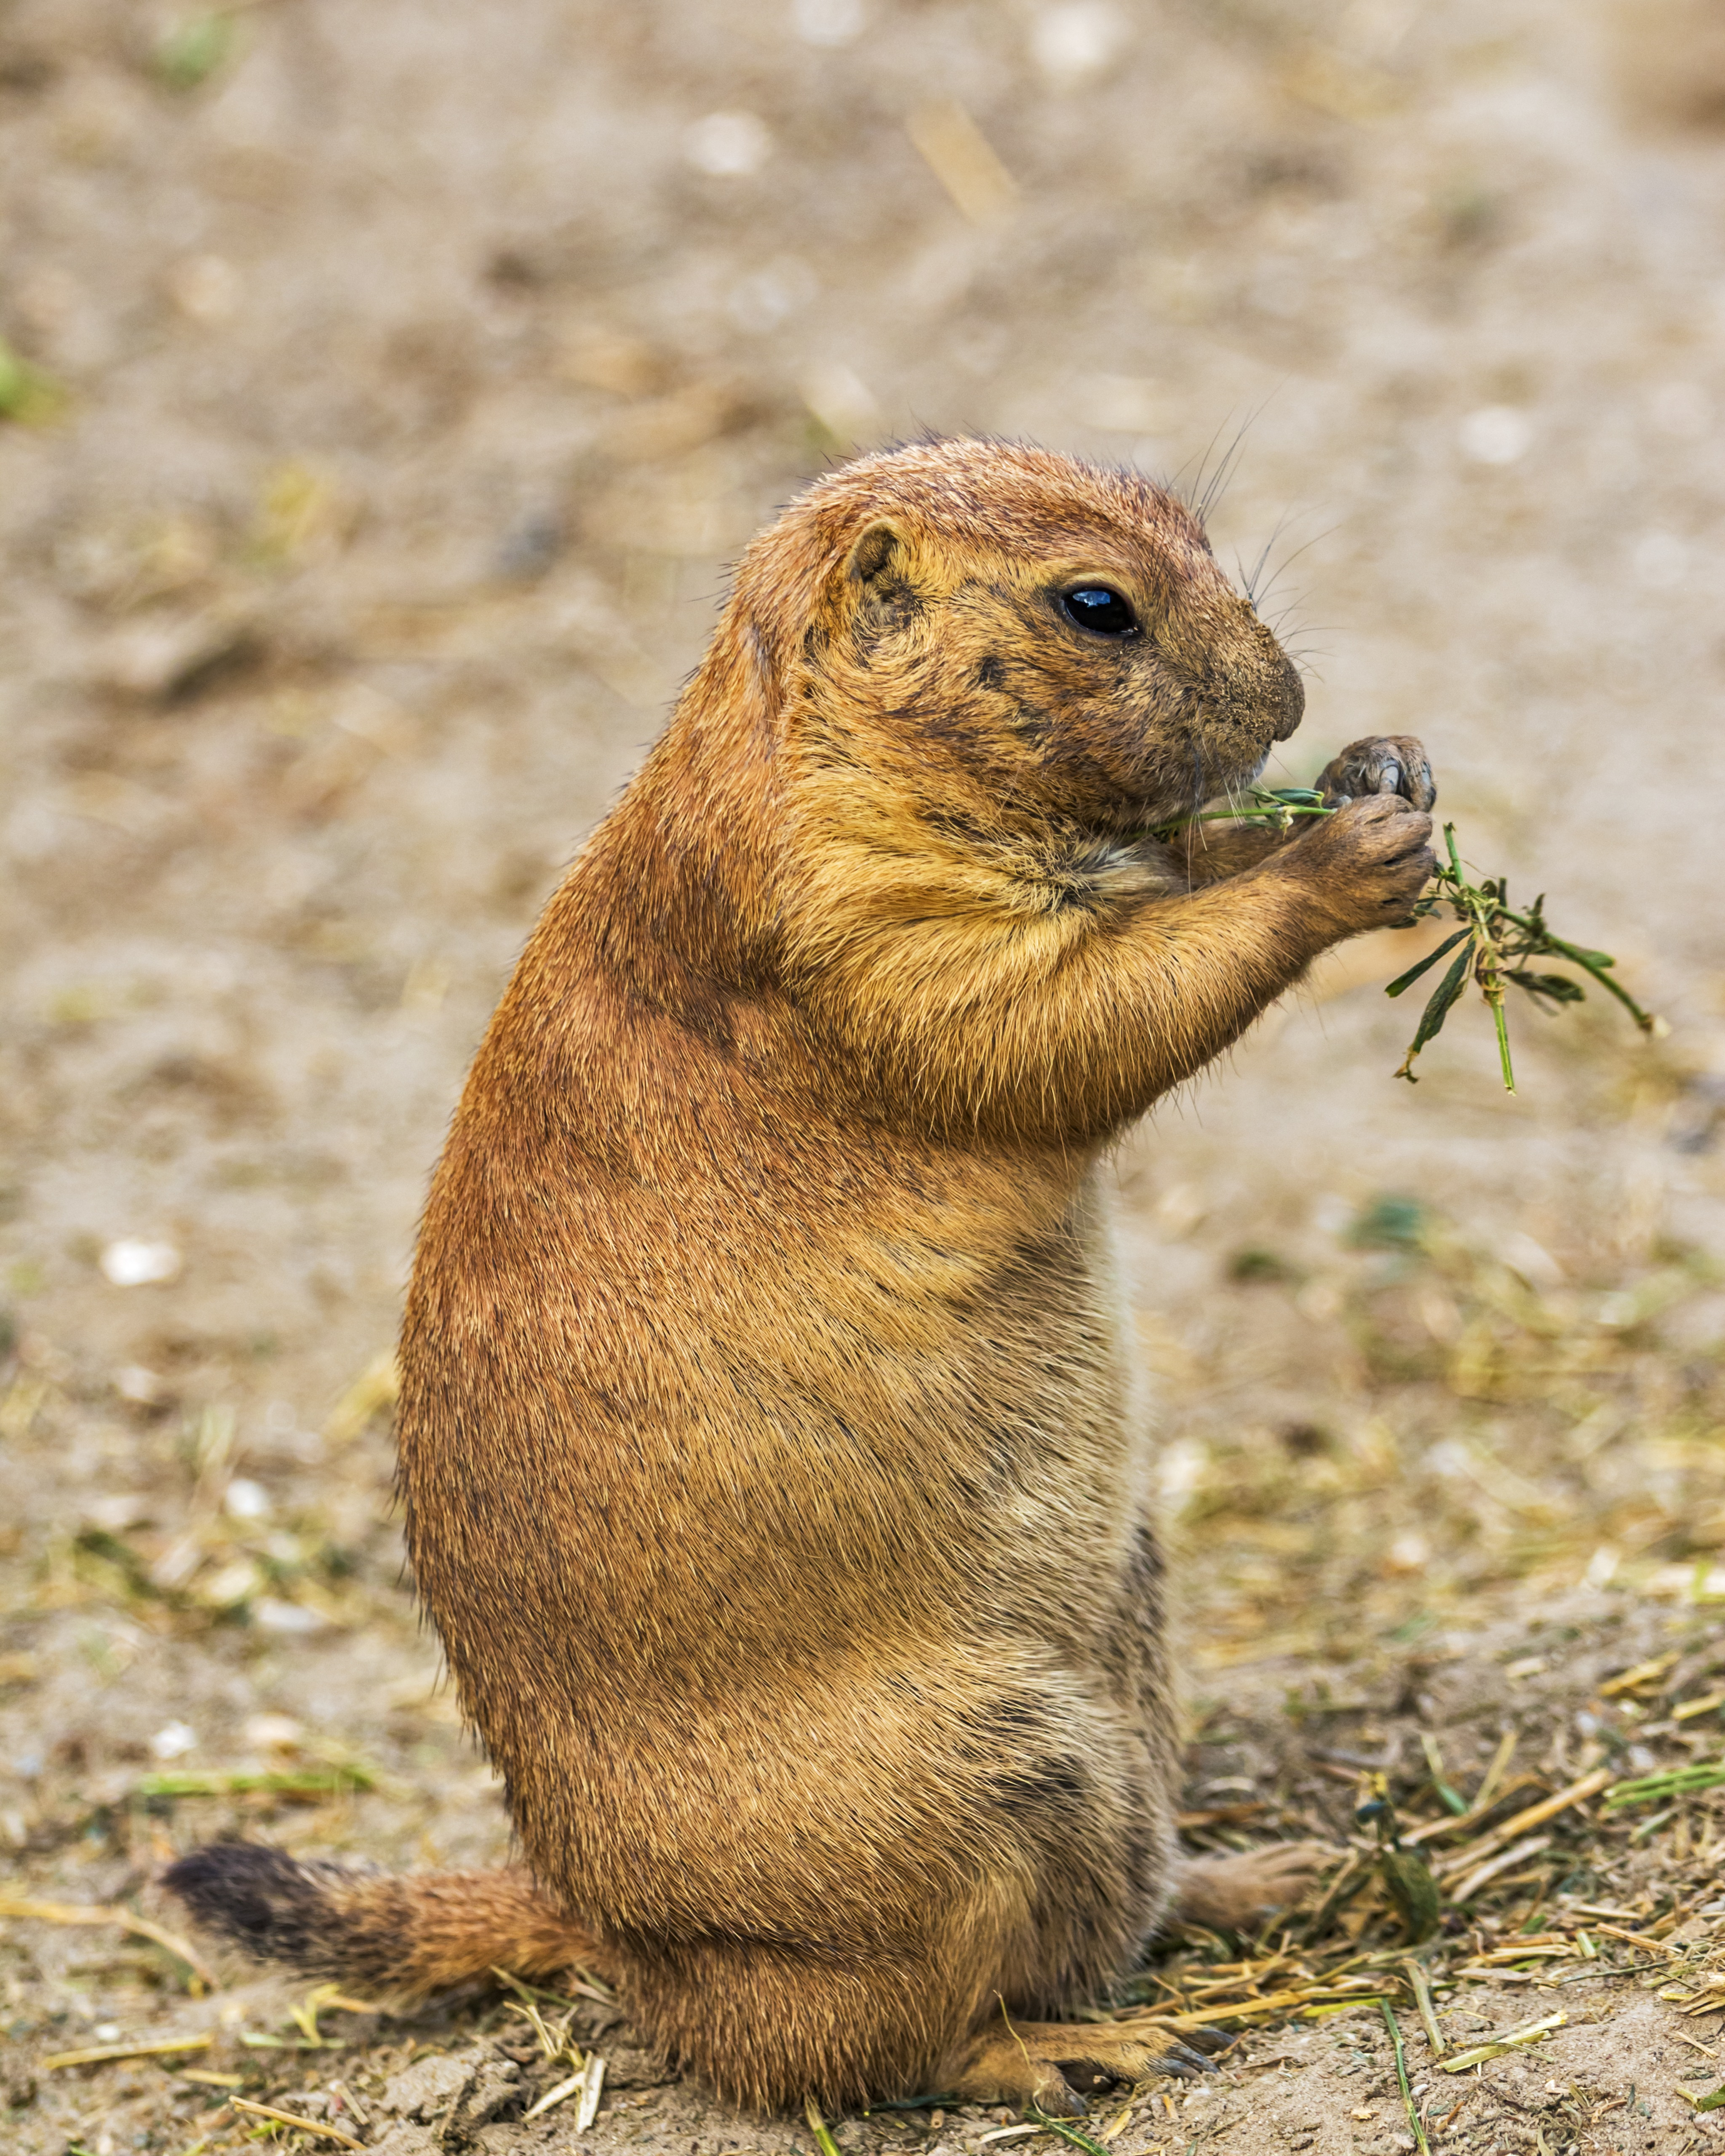 Wallpapers Hd Iphone 5 Free Stock Photo Of Animals Prairie Dogs Rodents